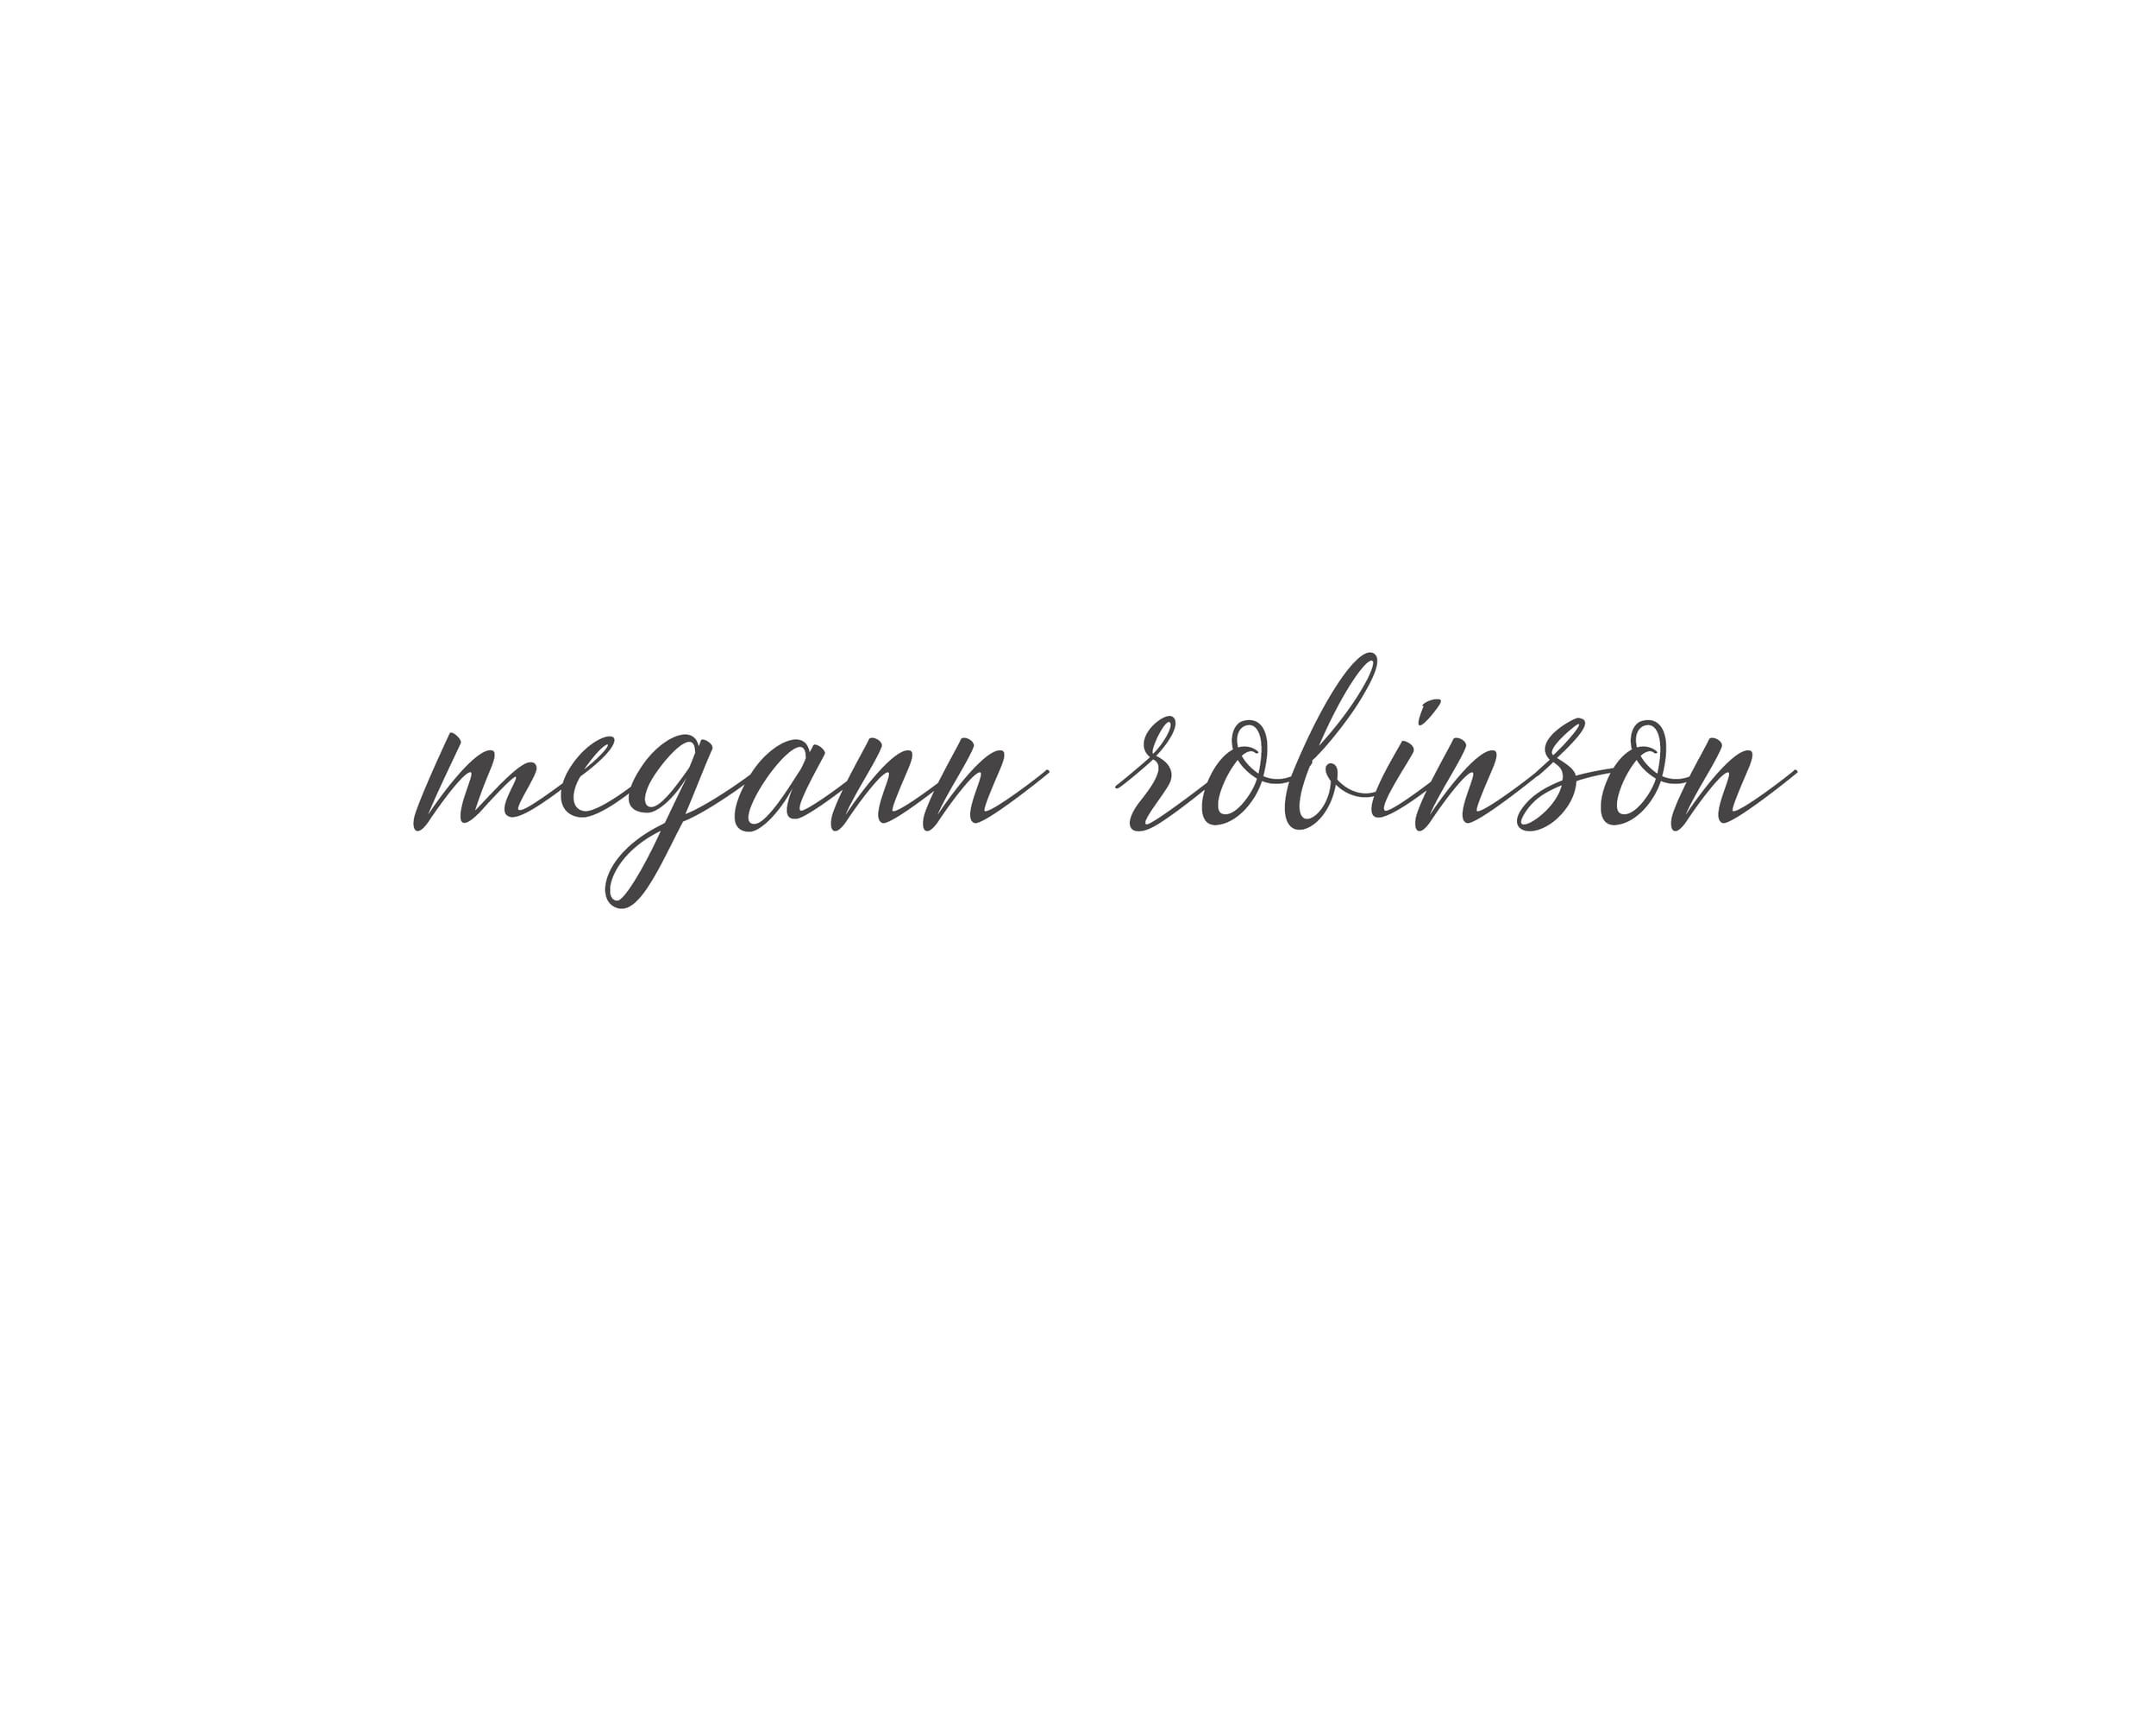 Megann Robinson Photography